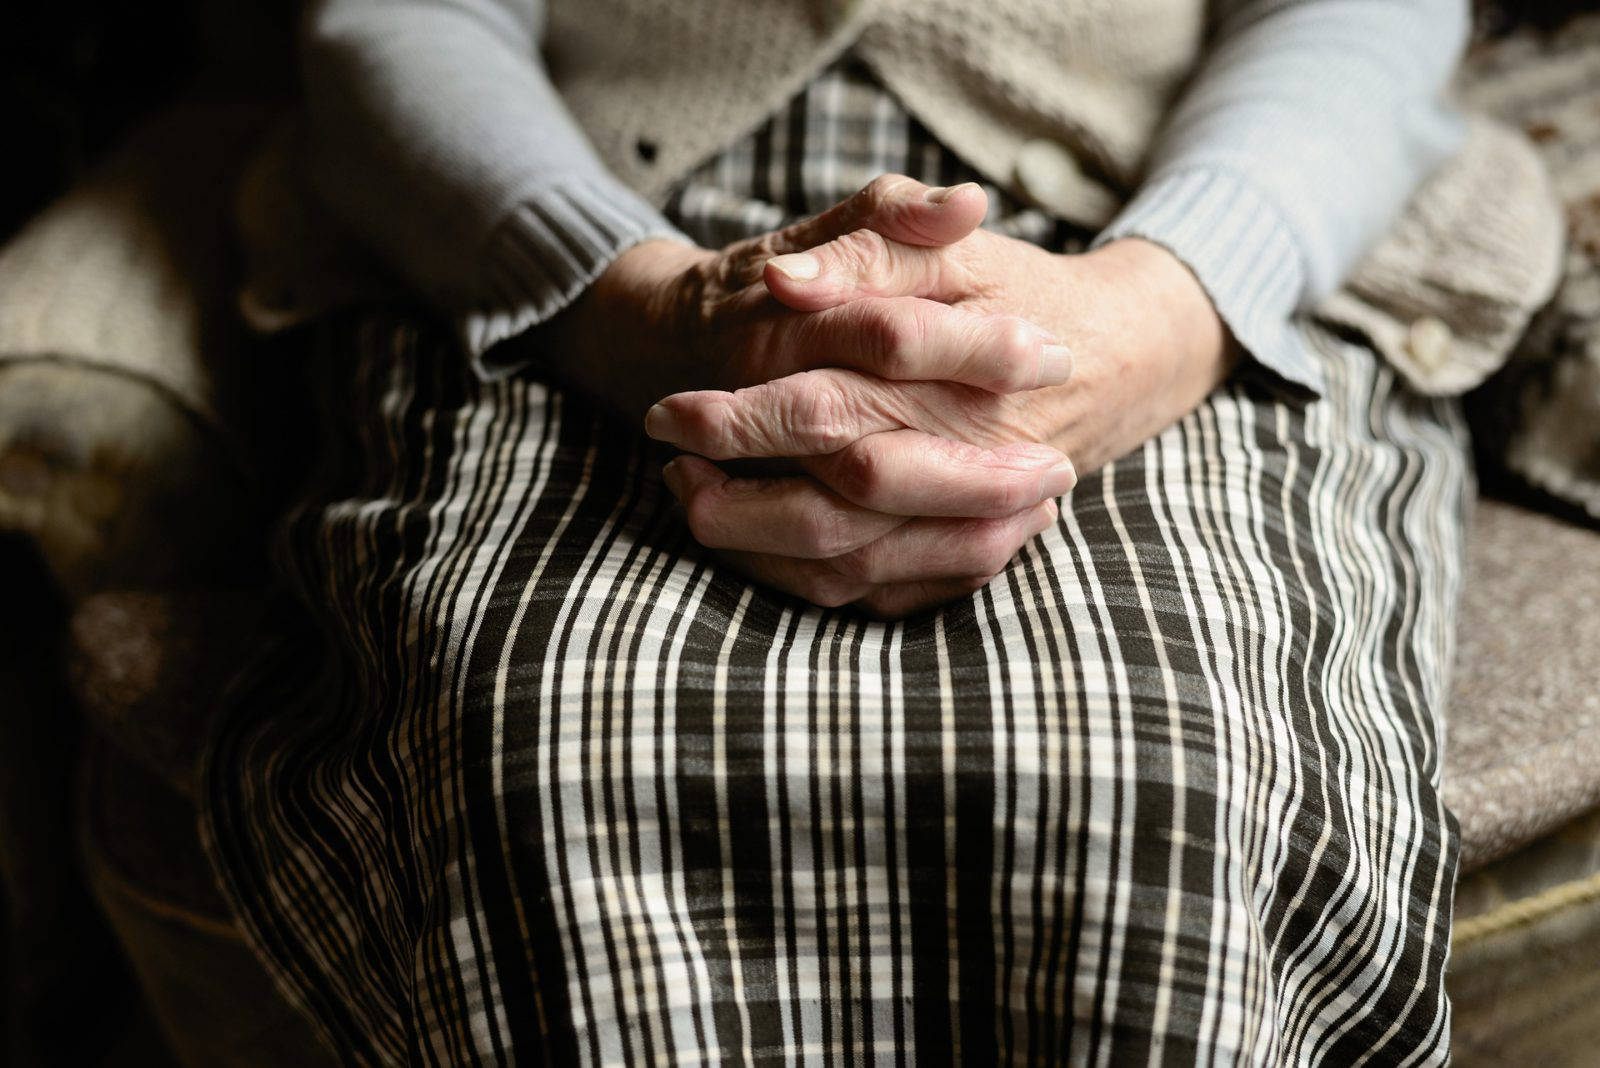 Hands of elderly woman clapsed